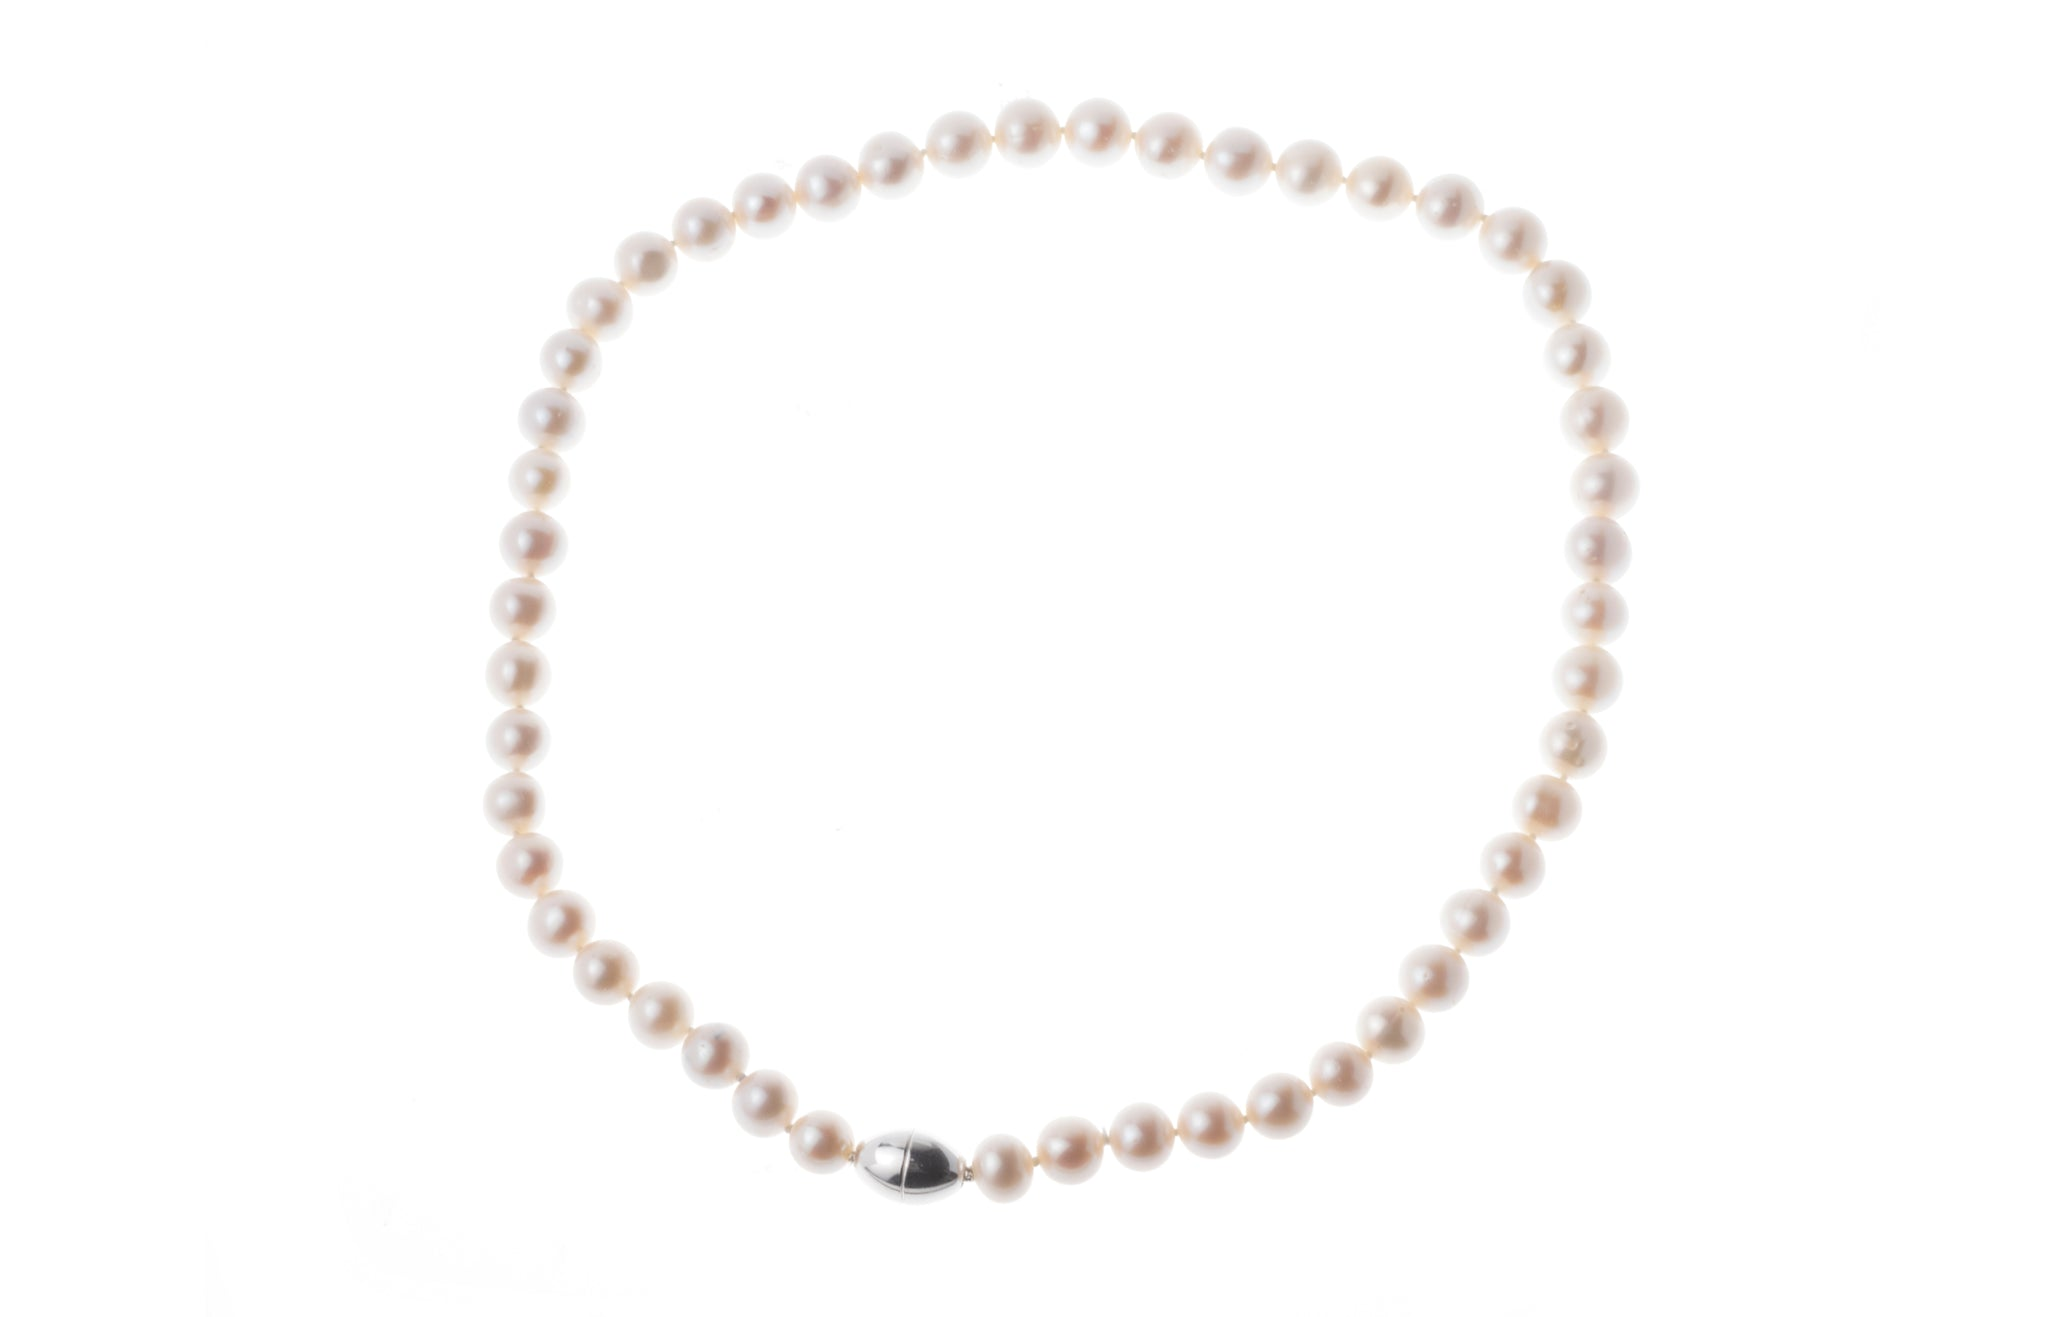 Cultured Pearl 8.5-9.5mm Necklace with Sterling Silver Magnetic Clasp SWZP8.5-9.5